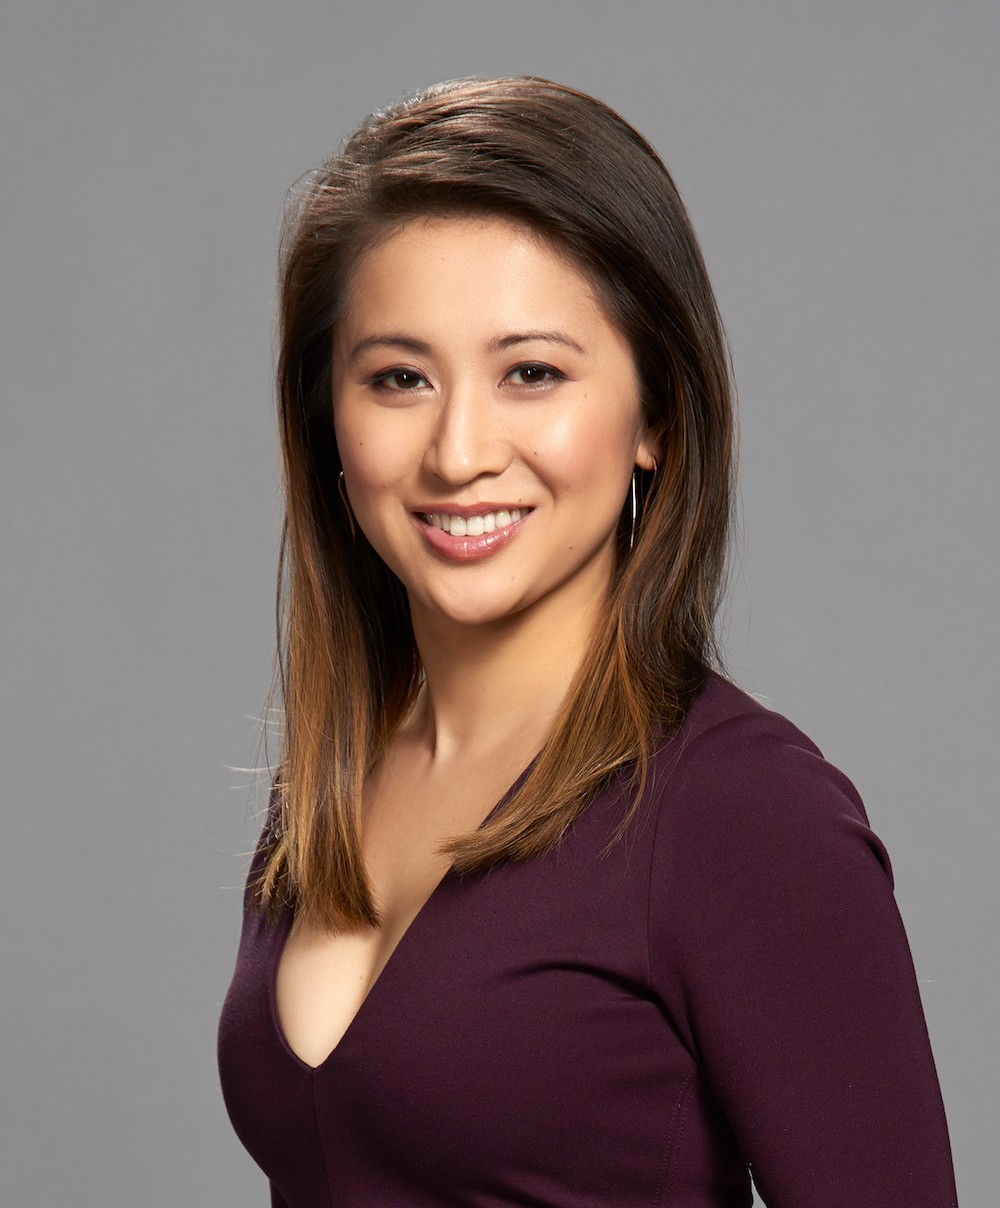 Hope King is an anchor at Cheddar. She has an M.S. from Columbia Journalism  School and was previously a reporter with CNN and Business Insider.